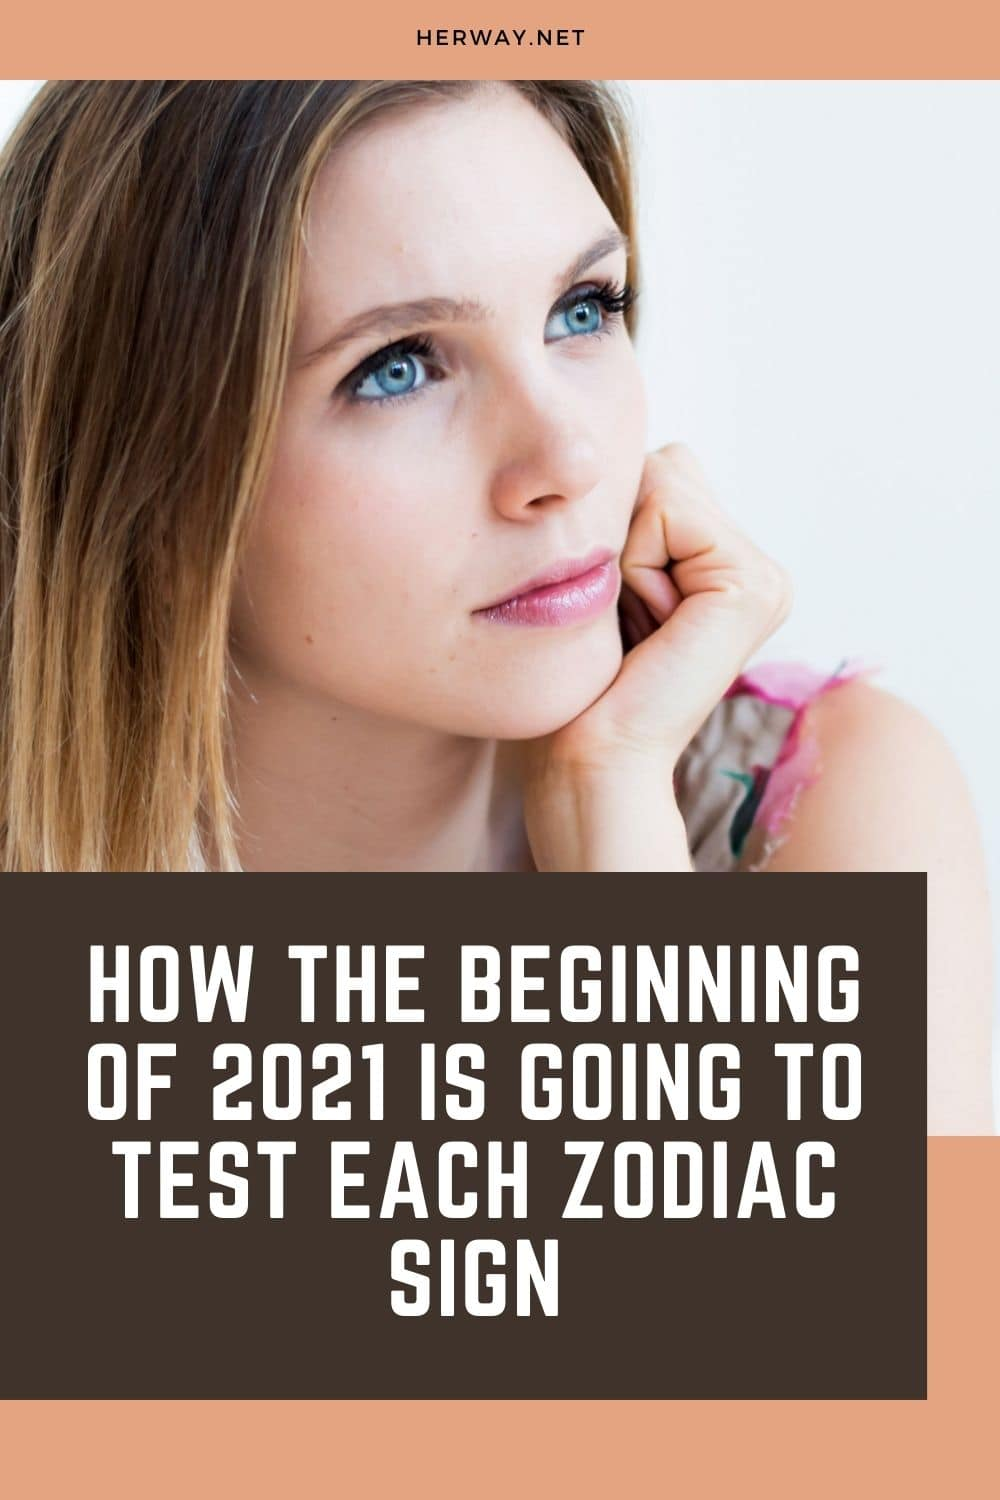 How The Beginning Of 2021 Is Going To Test Each Zodiac Sign